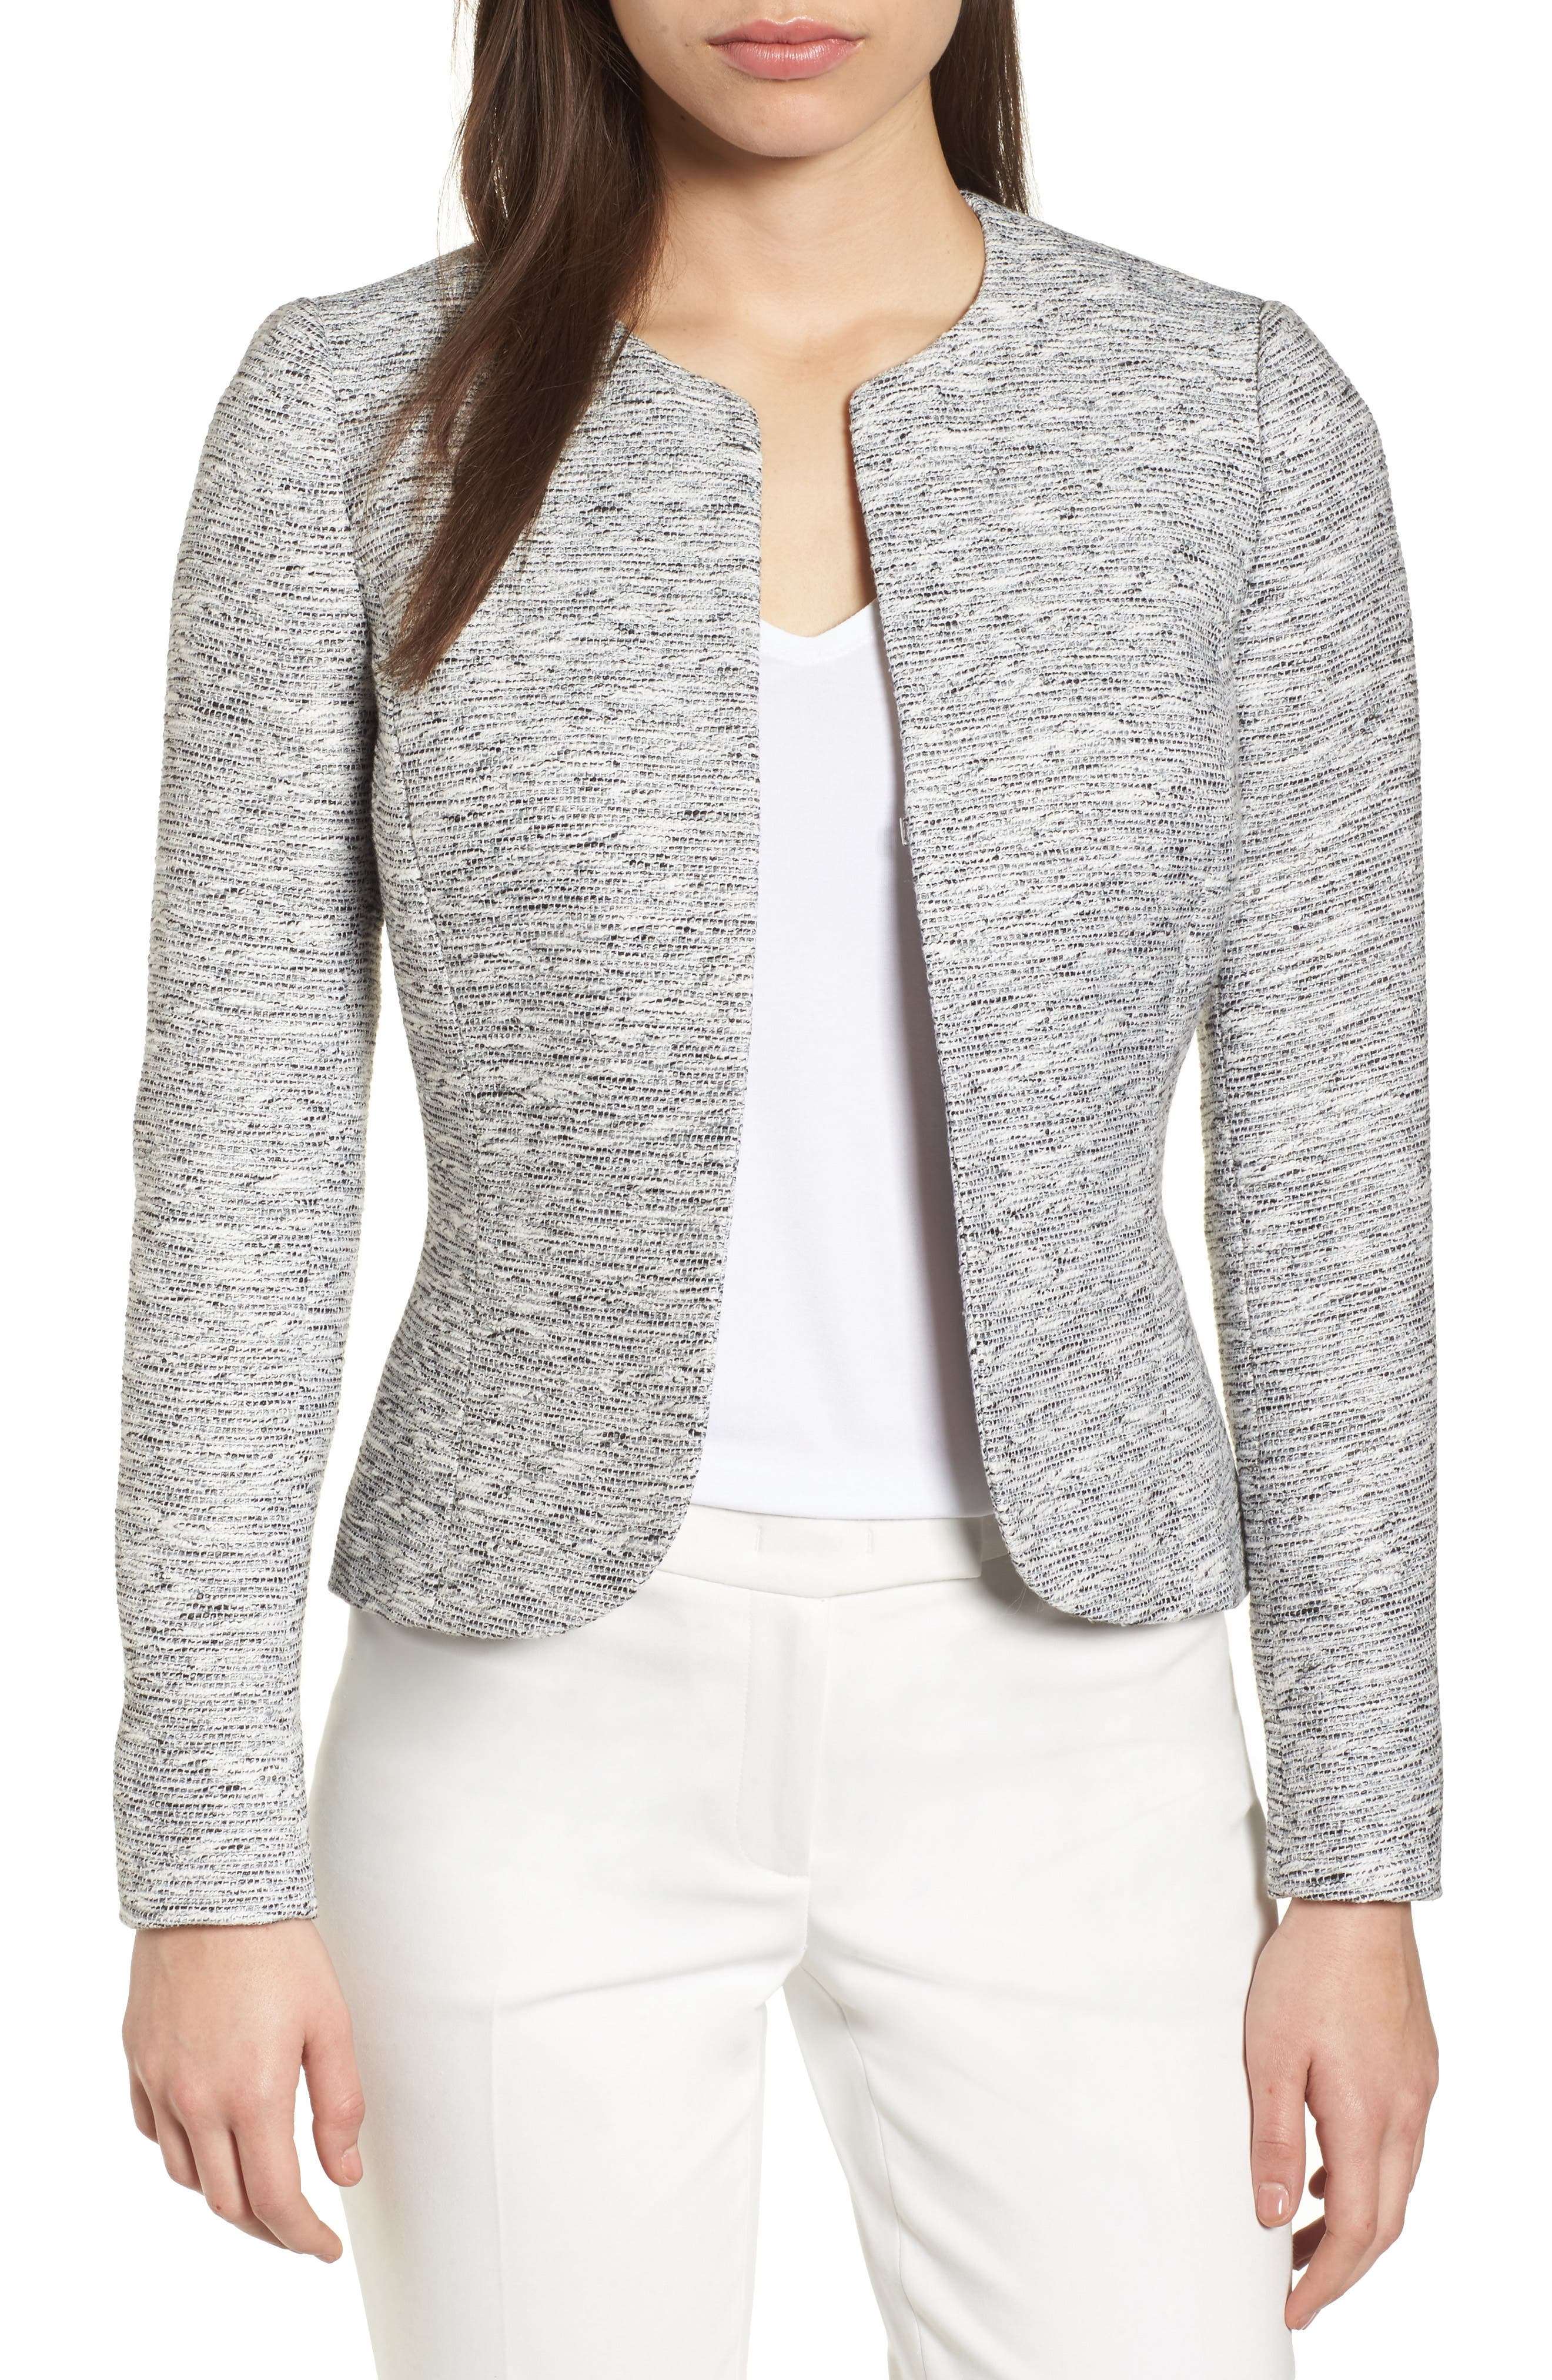 ANNE KLEIN,                             Etched Tweed Jacket,                             Main thumbnail 1, color,                             020